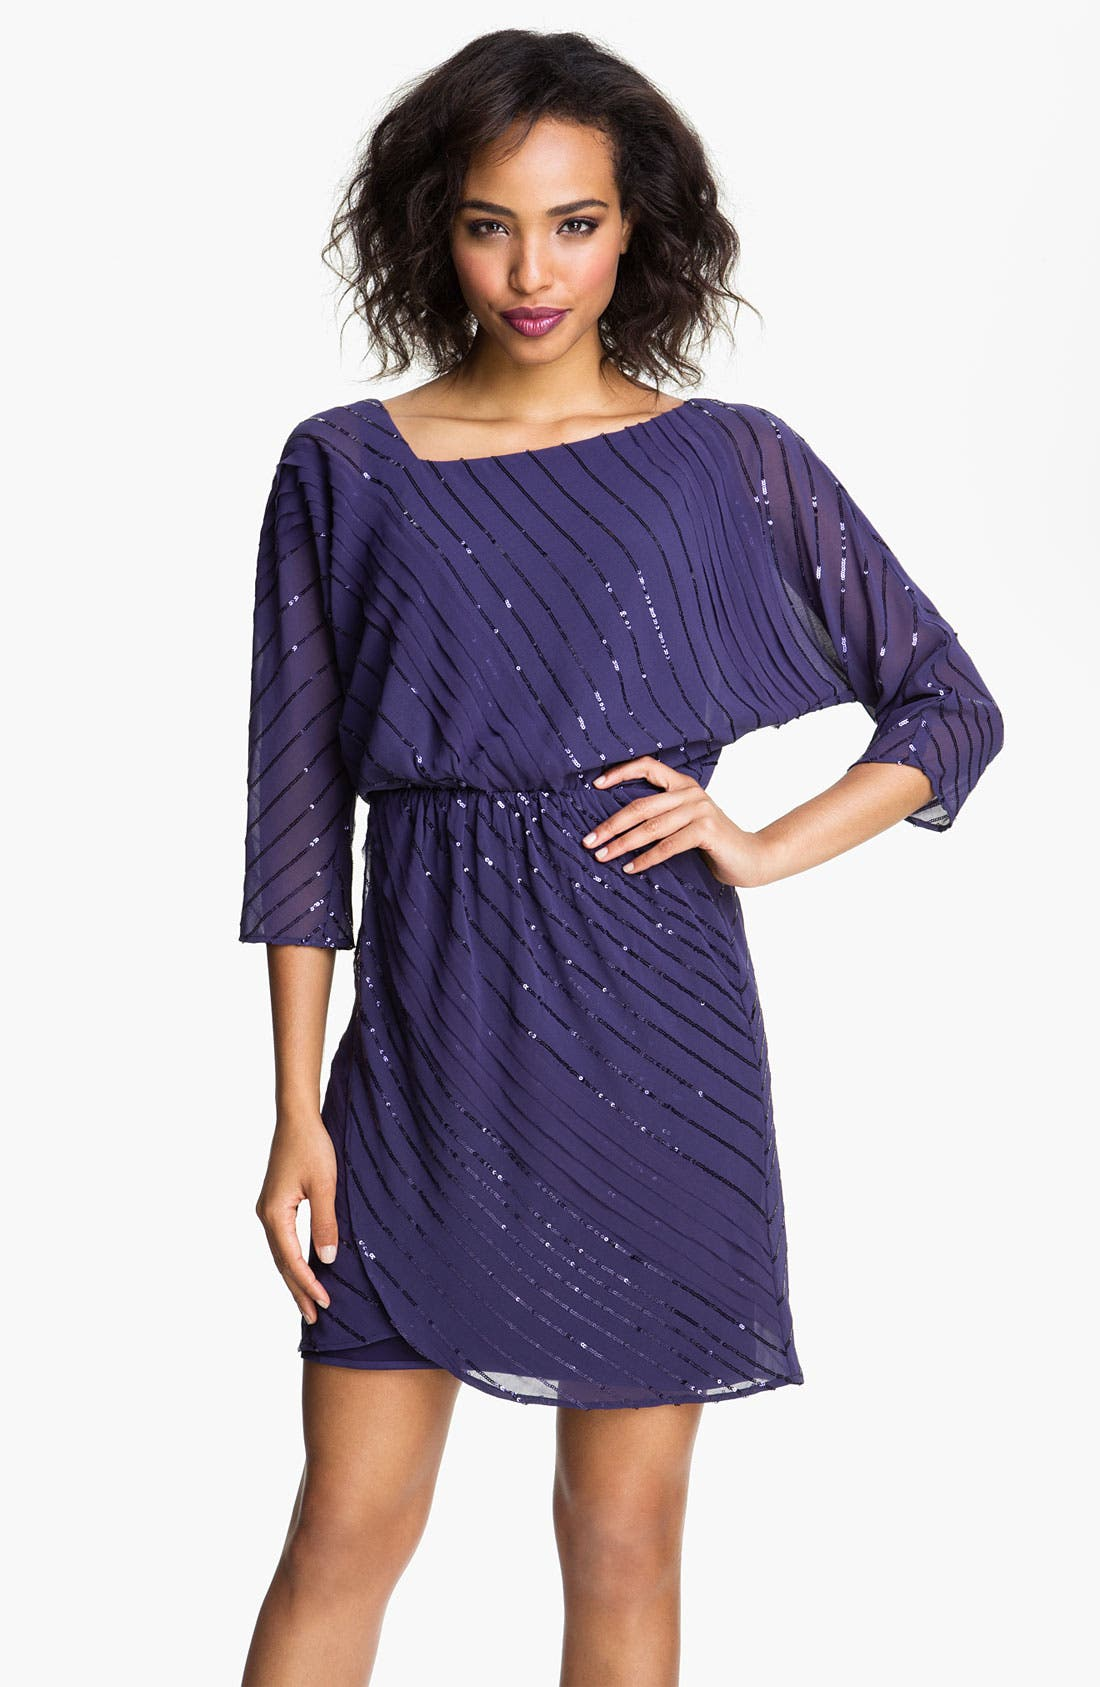 Alternate Image 1 Selected - Vince Camuto Sequin Stripe Chiffon Dress